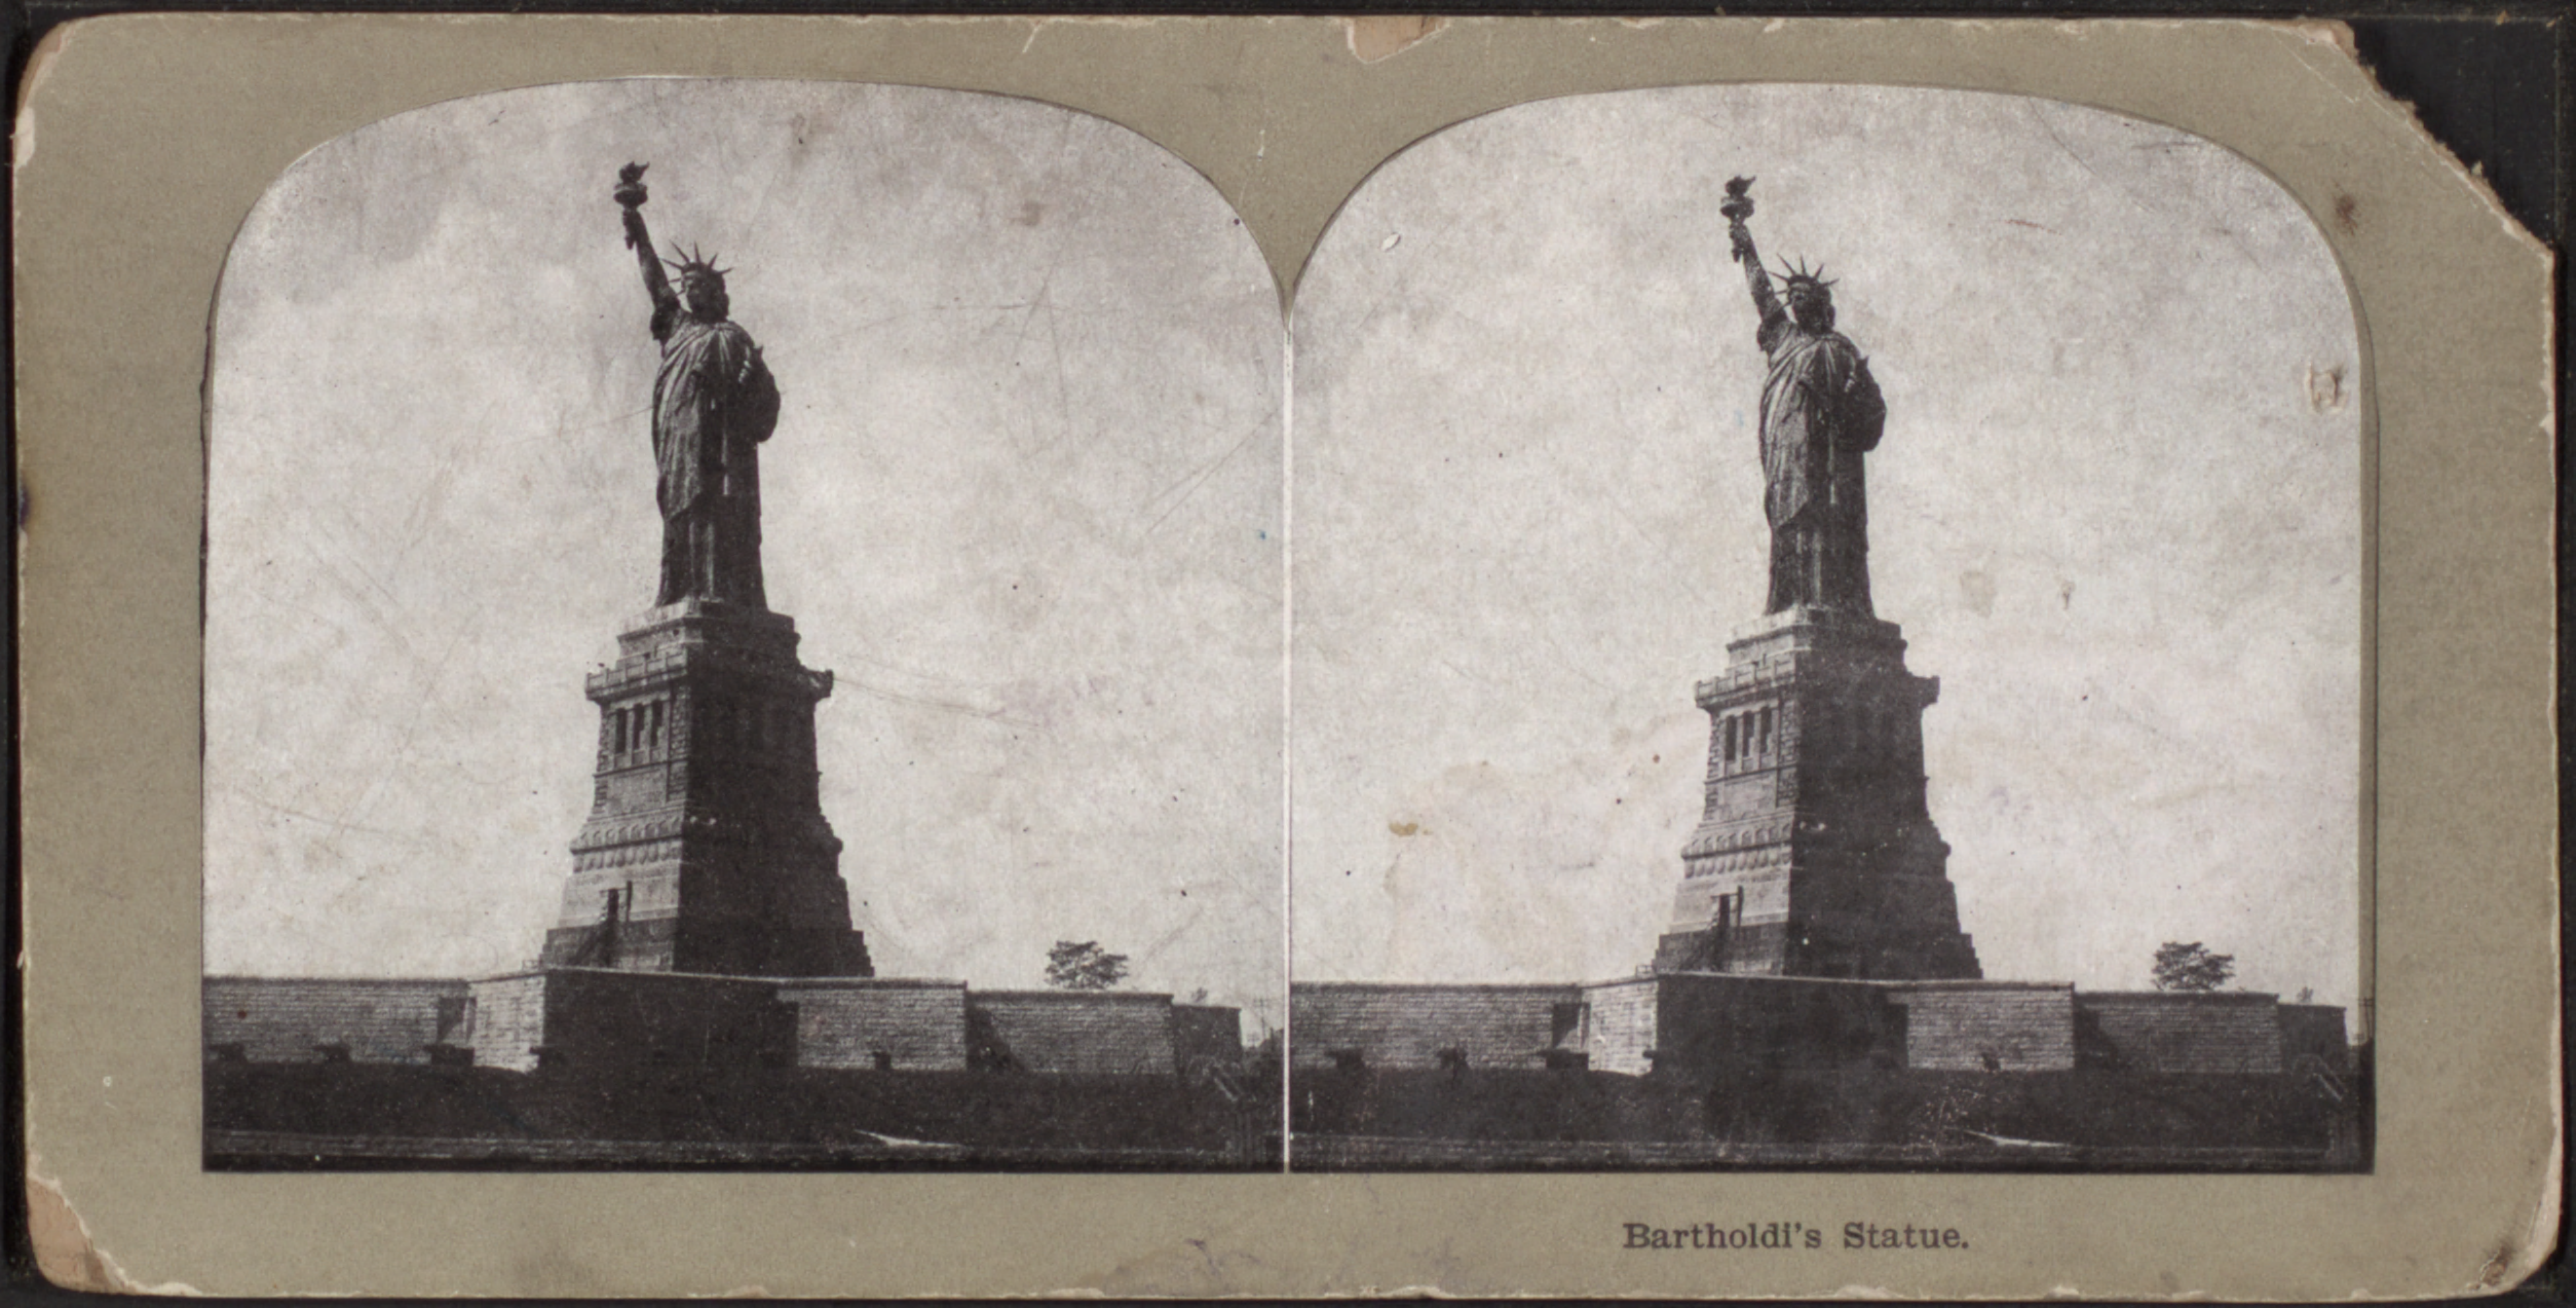 Bartholdi's statue (the Statue of Liberty), from Robert N. Dennis collection of stereoscopic views 3.png